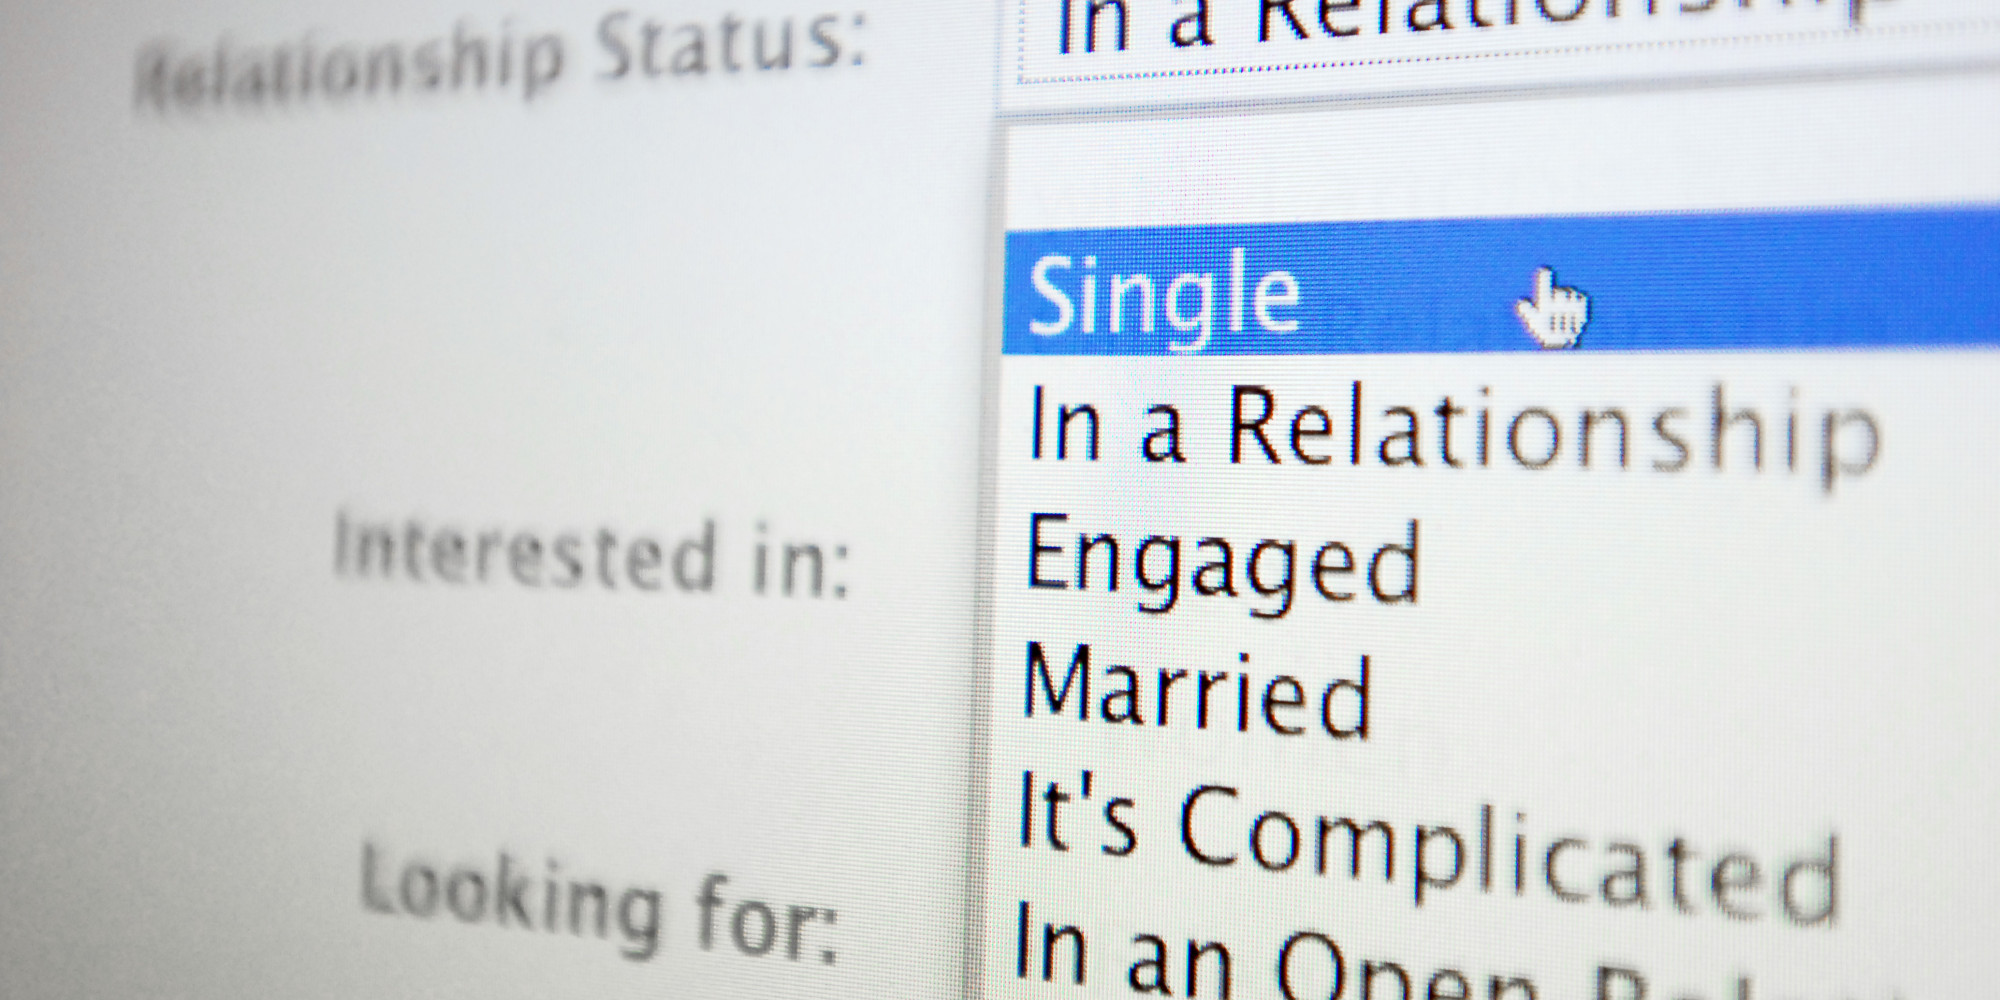 how to make facebook status in a relationship